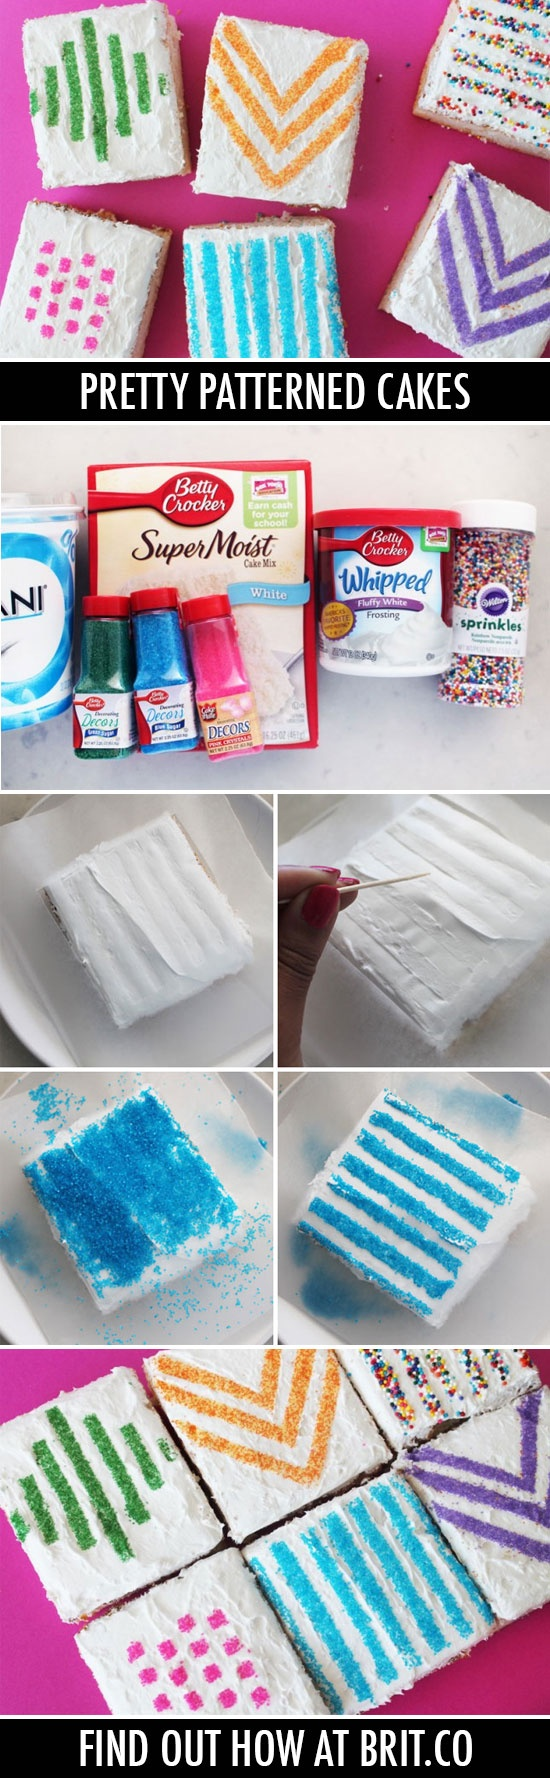 Use Wax Paper Stencils to Make Pretty Patterned Cakes